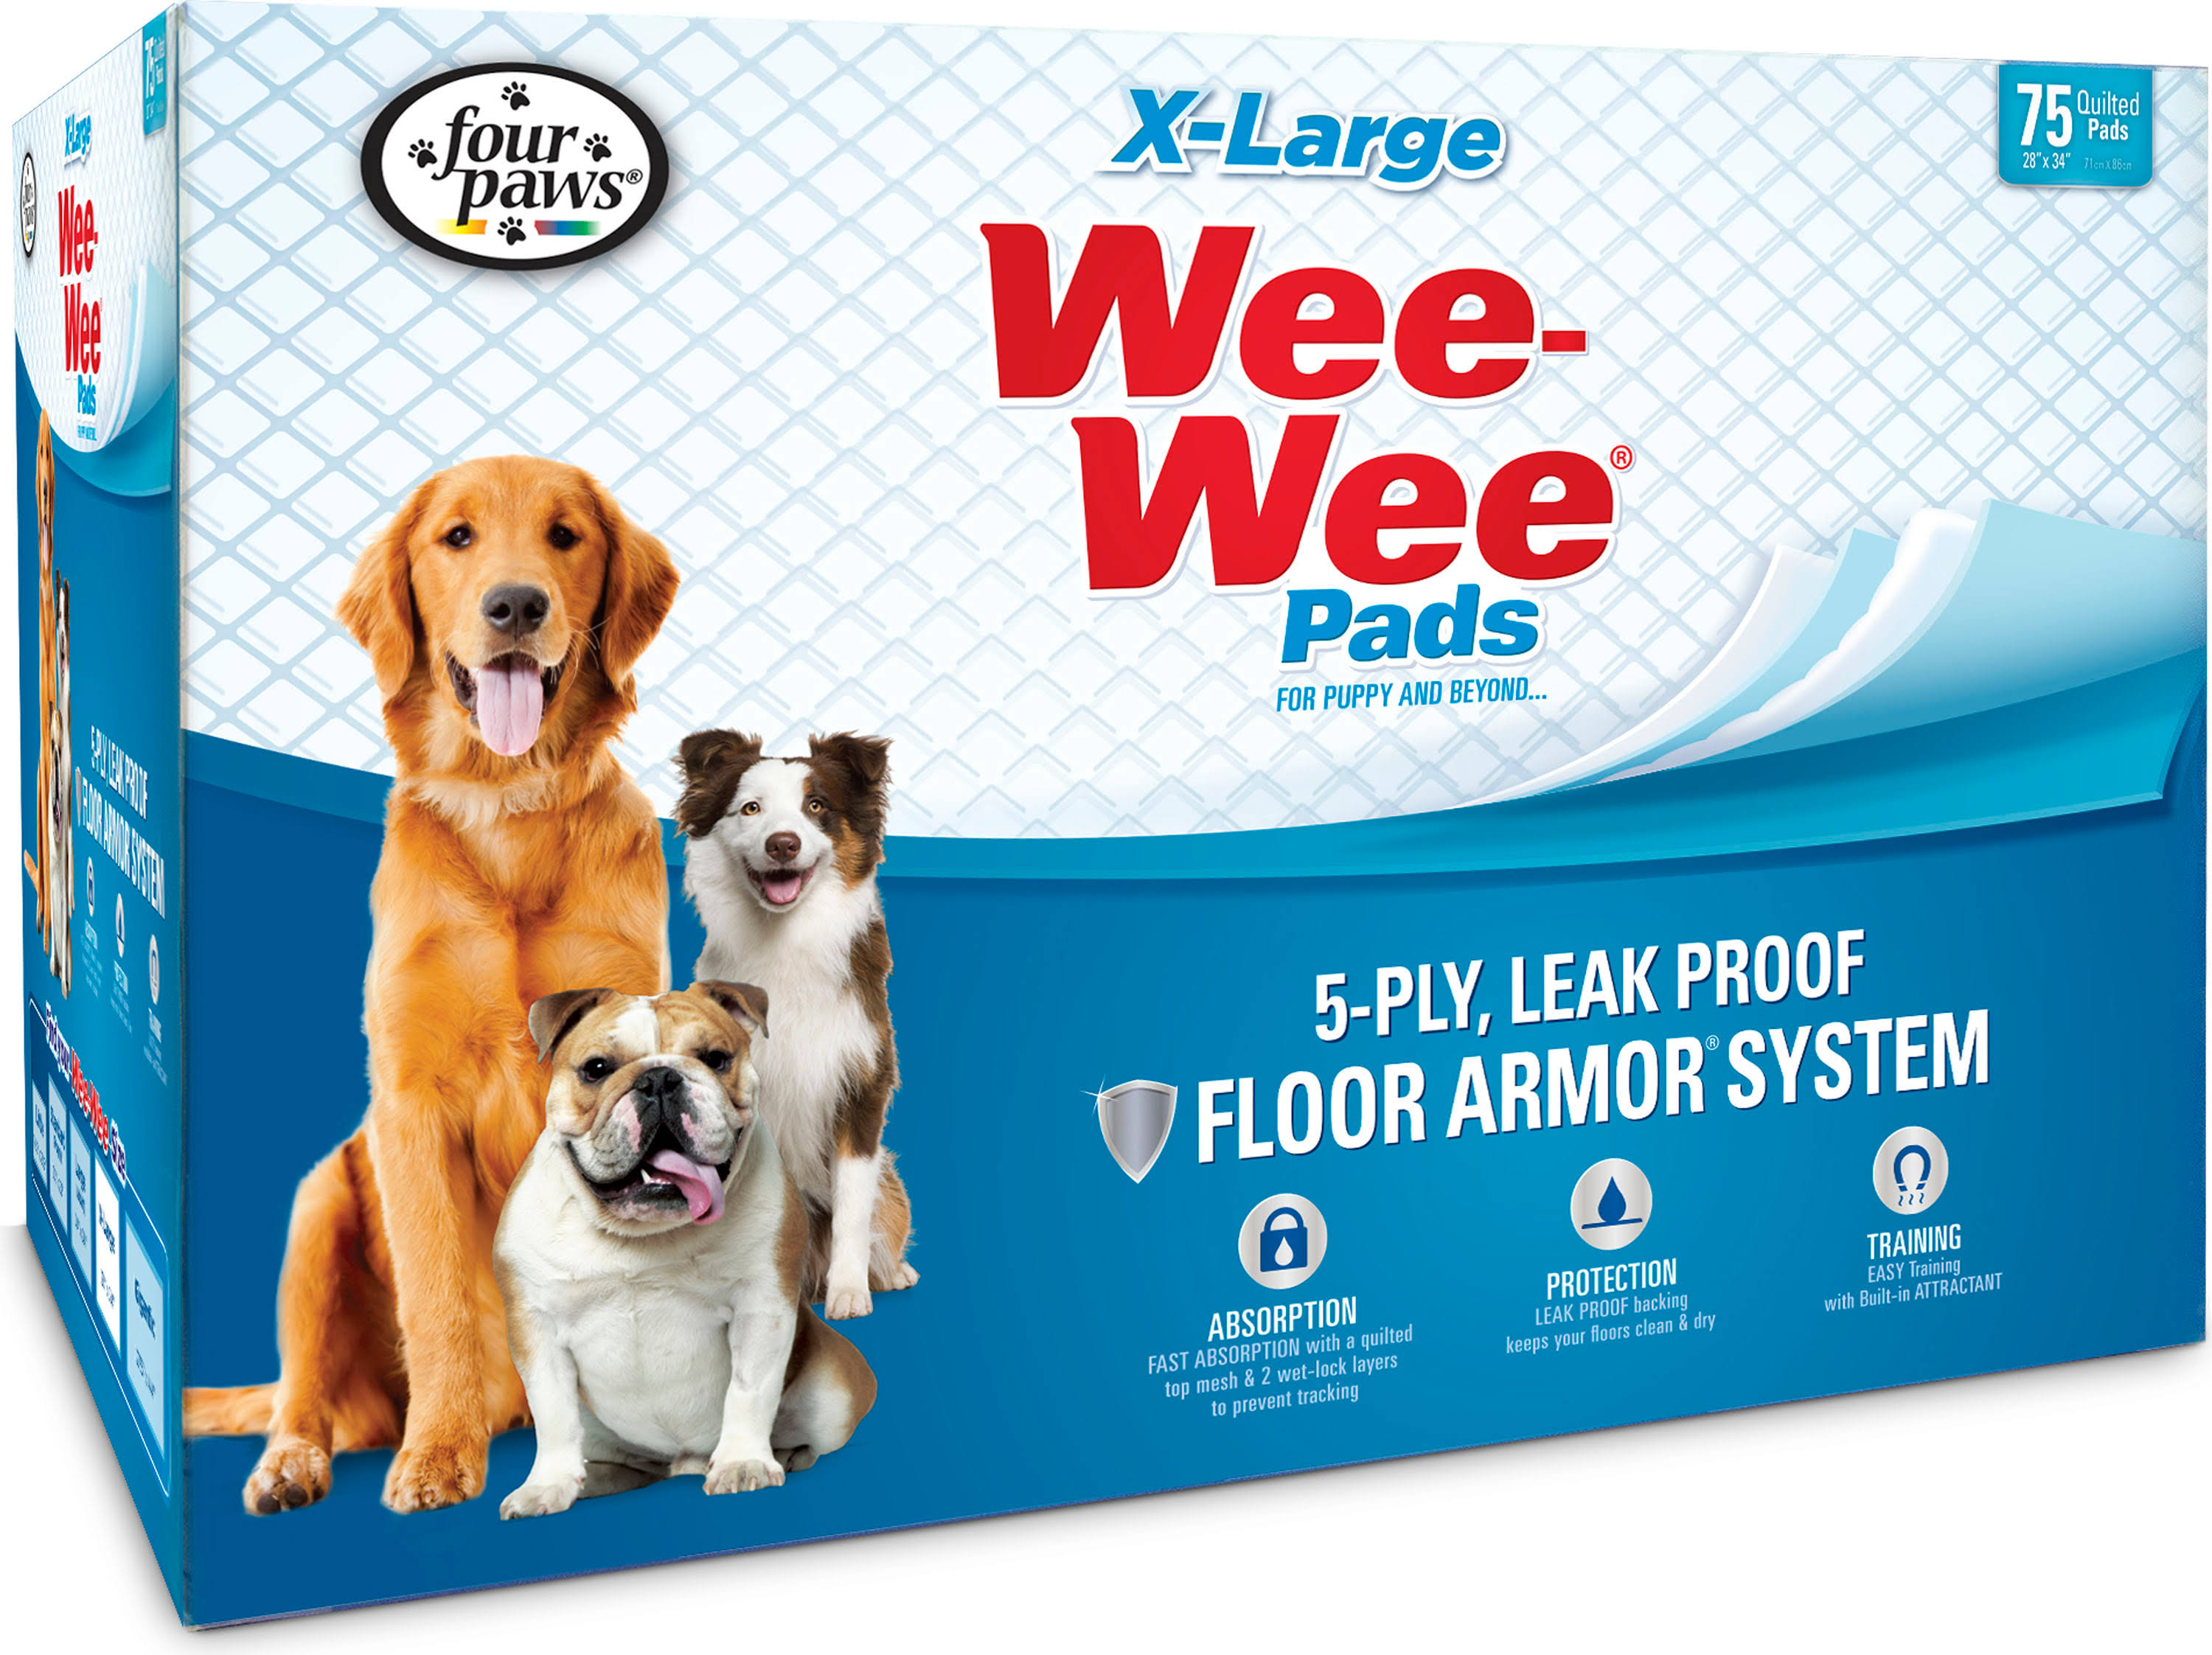 Four Paws Wee-wee Dog Training Pads - X-Large, 75ct